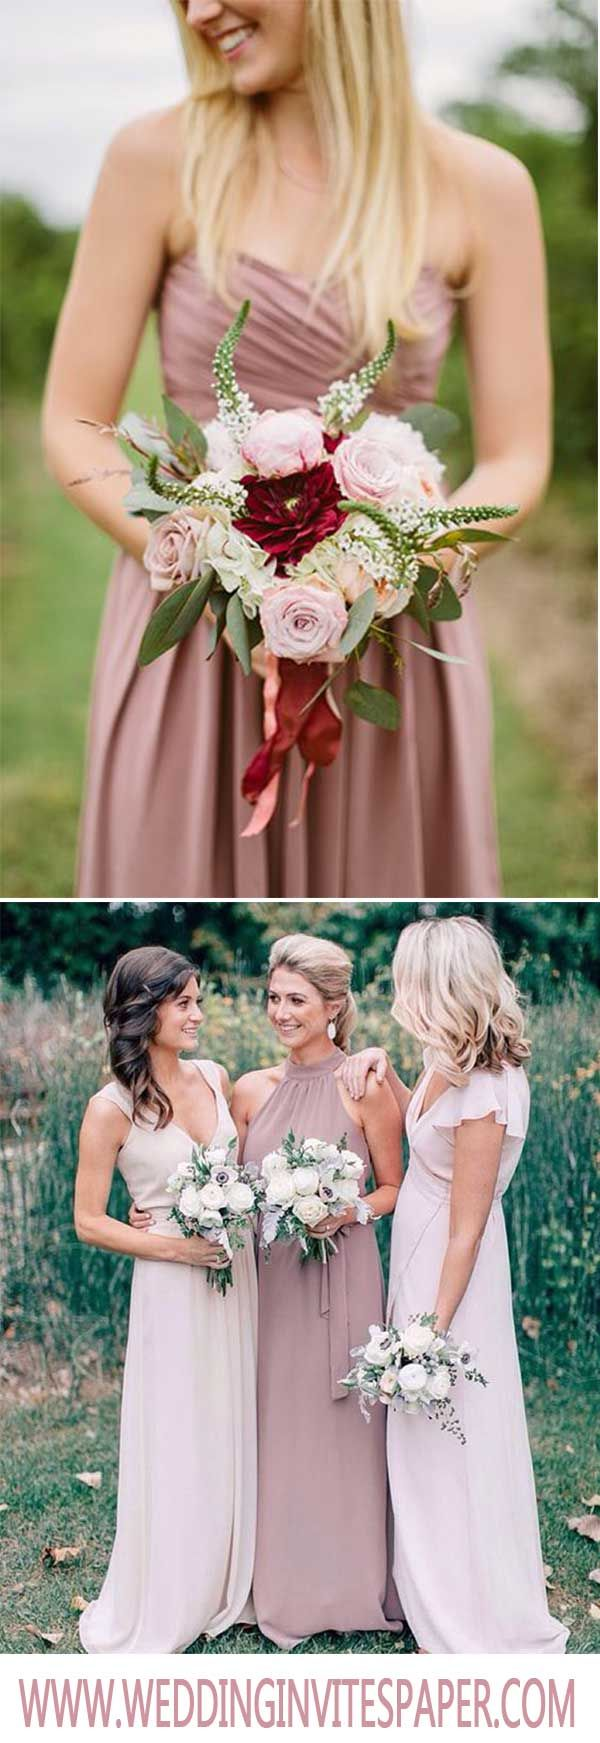 25 cute bridesmaid dresses marsala ideas on pinterest berry wedding pantone neutral color marsala in 2018 wedding trendy wedding invites paper mauve wedding ombrellifo Image collections